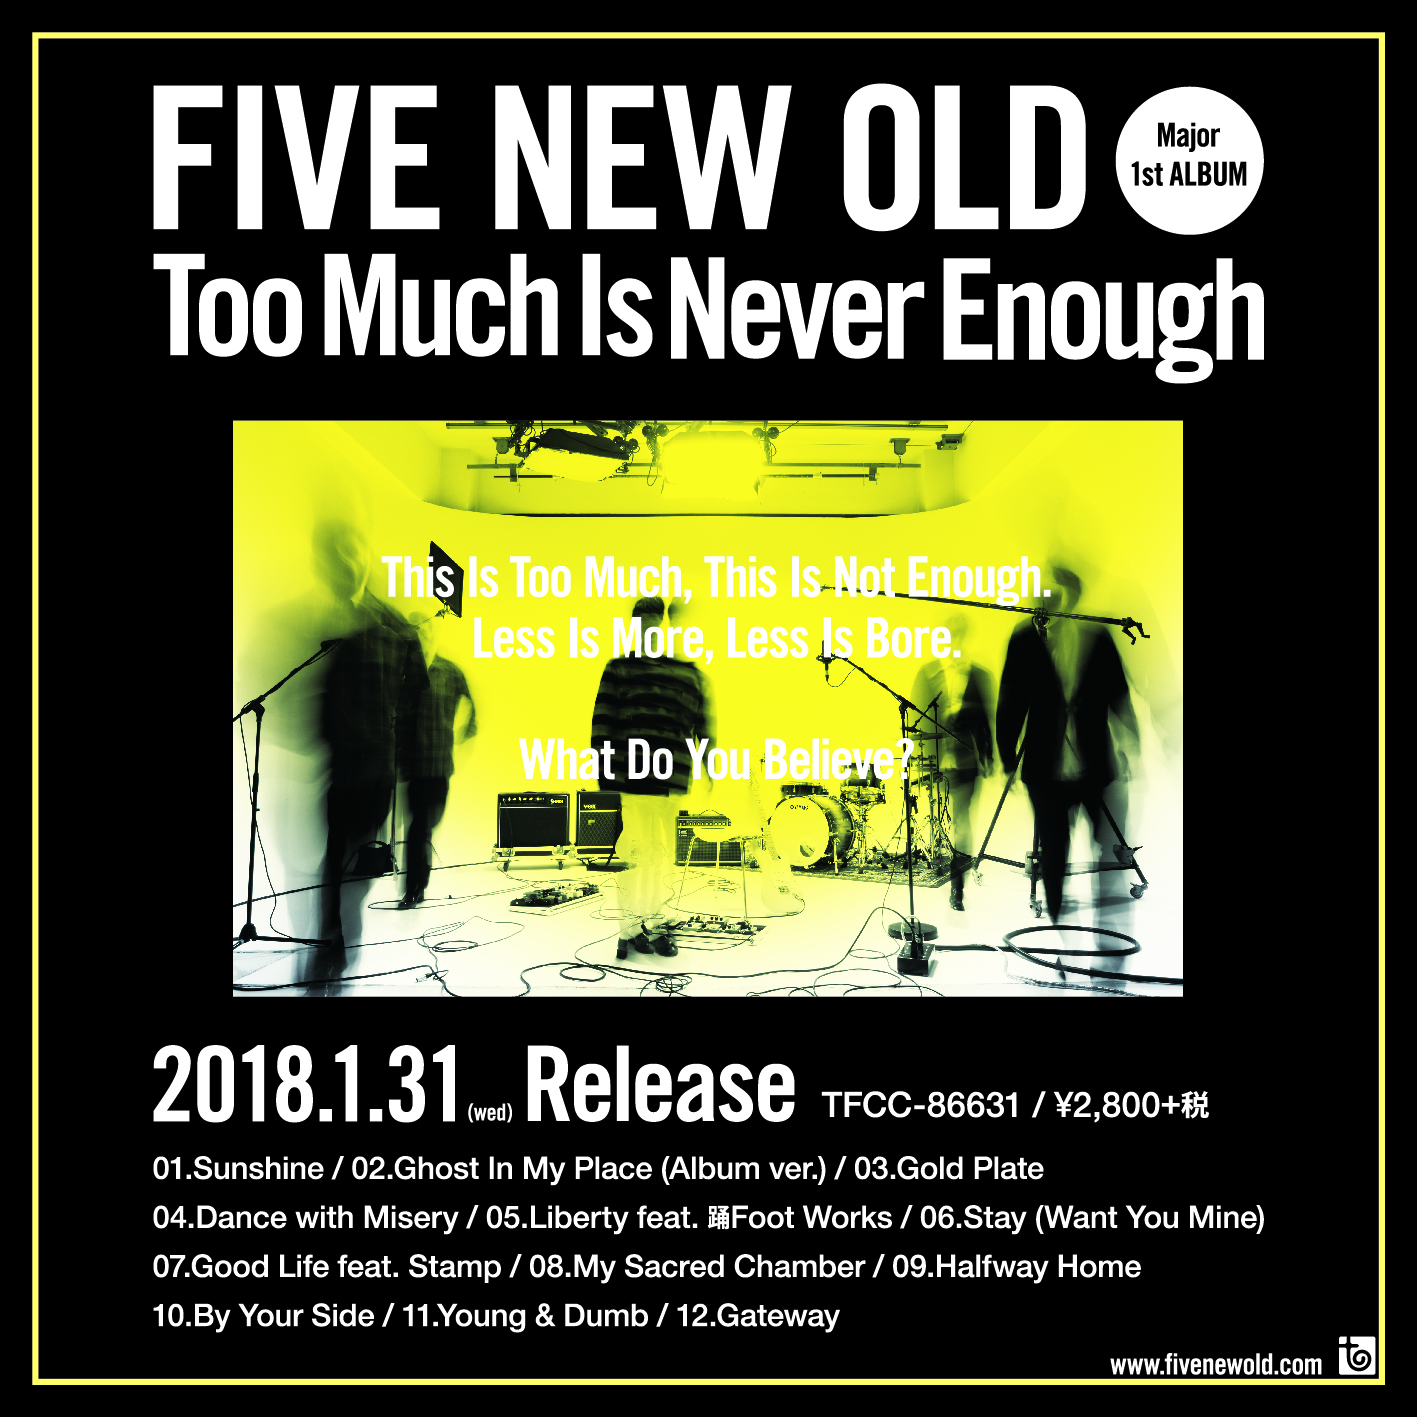 FIVE NEW OLD/Too Much Is Never Enough